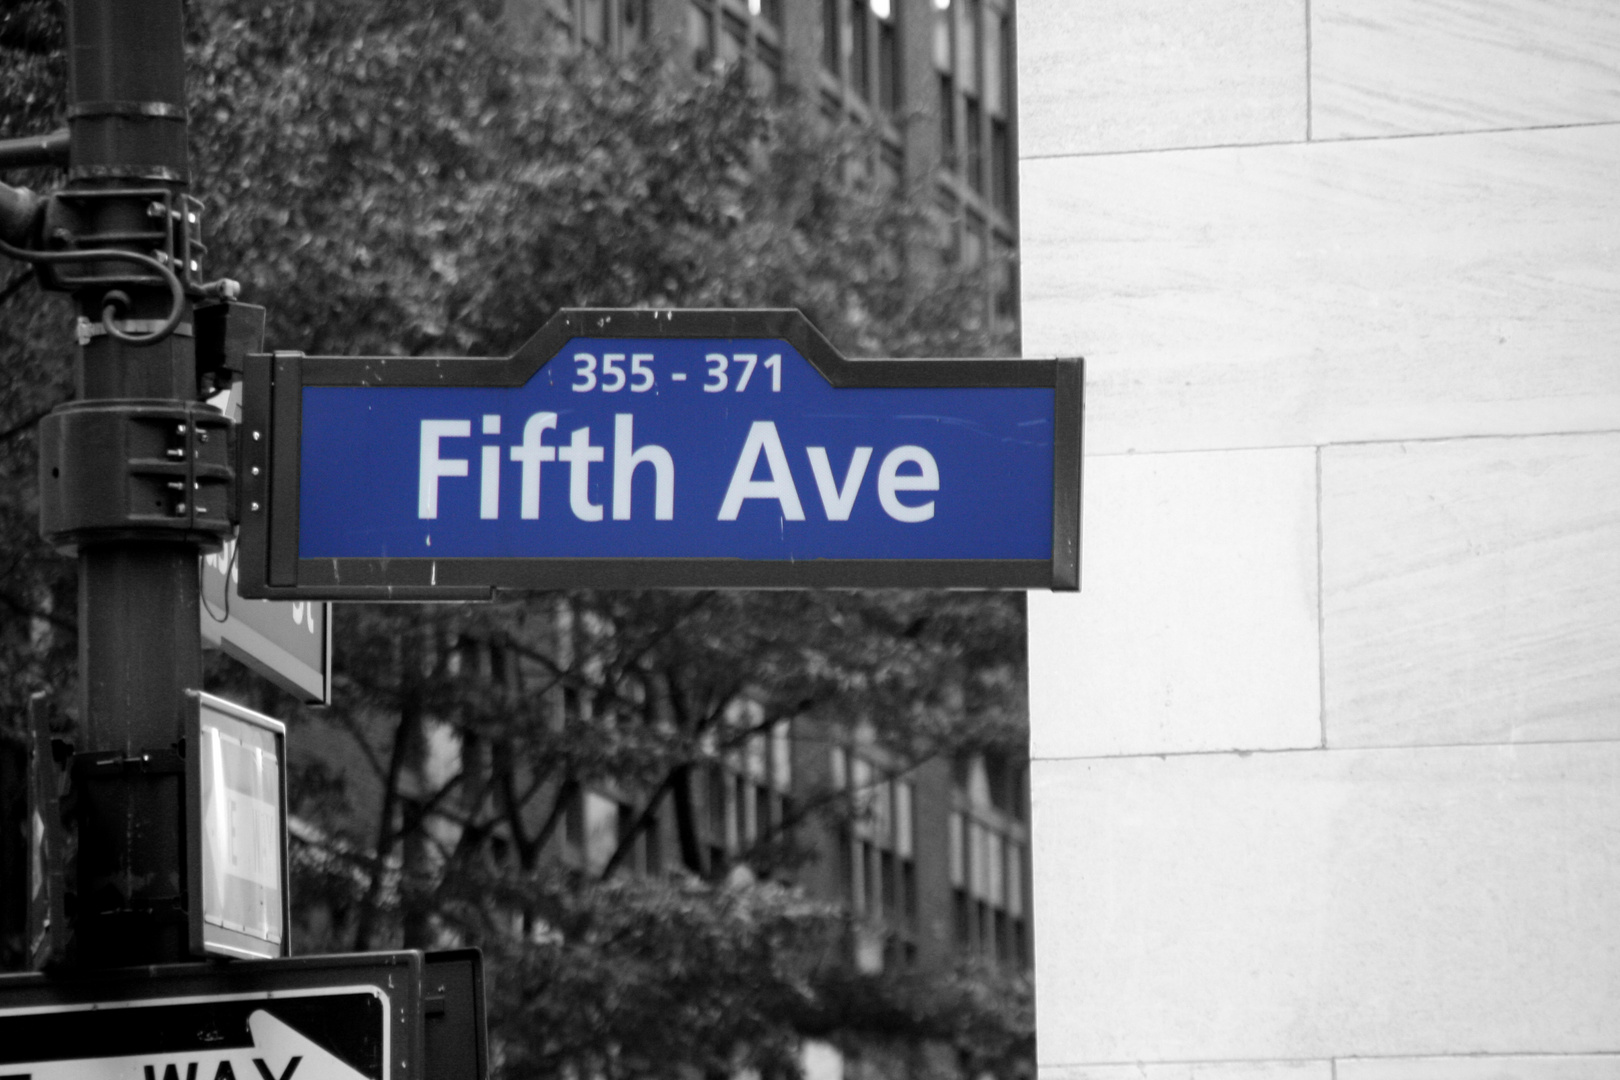 Fifth Ave - New York